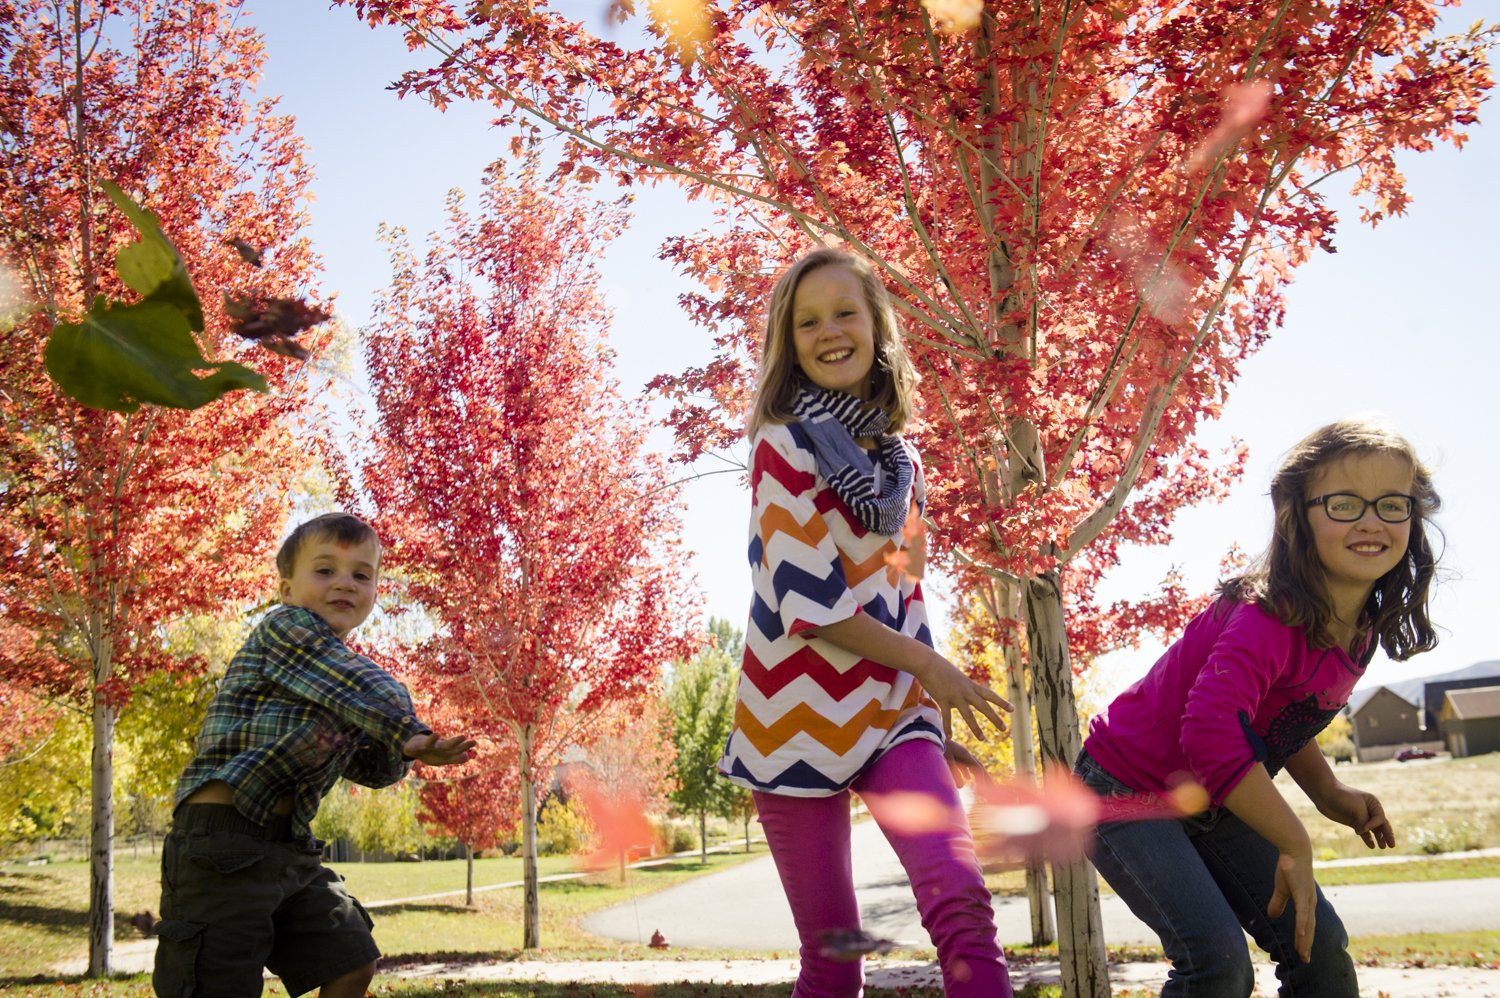 fall_lifestyle_family_leaves_candid_playing-004.jpg